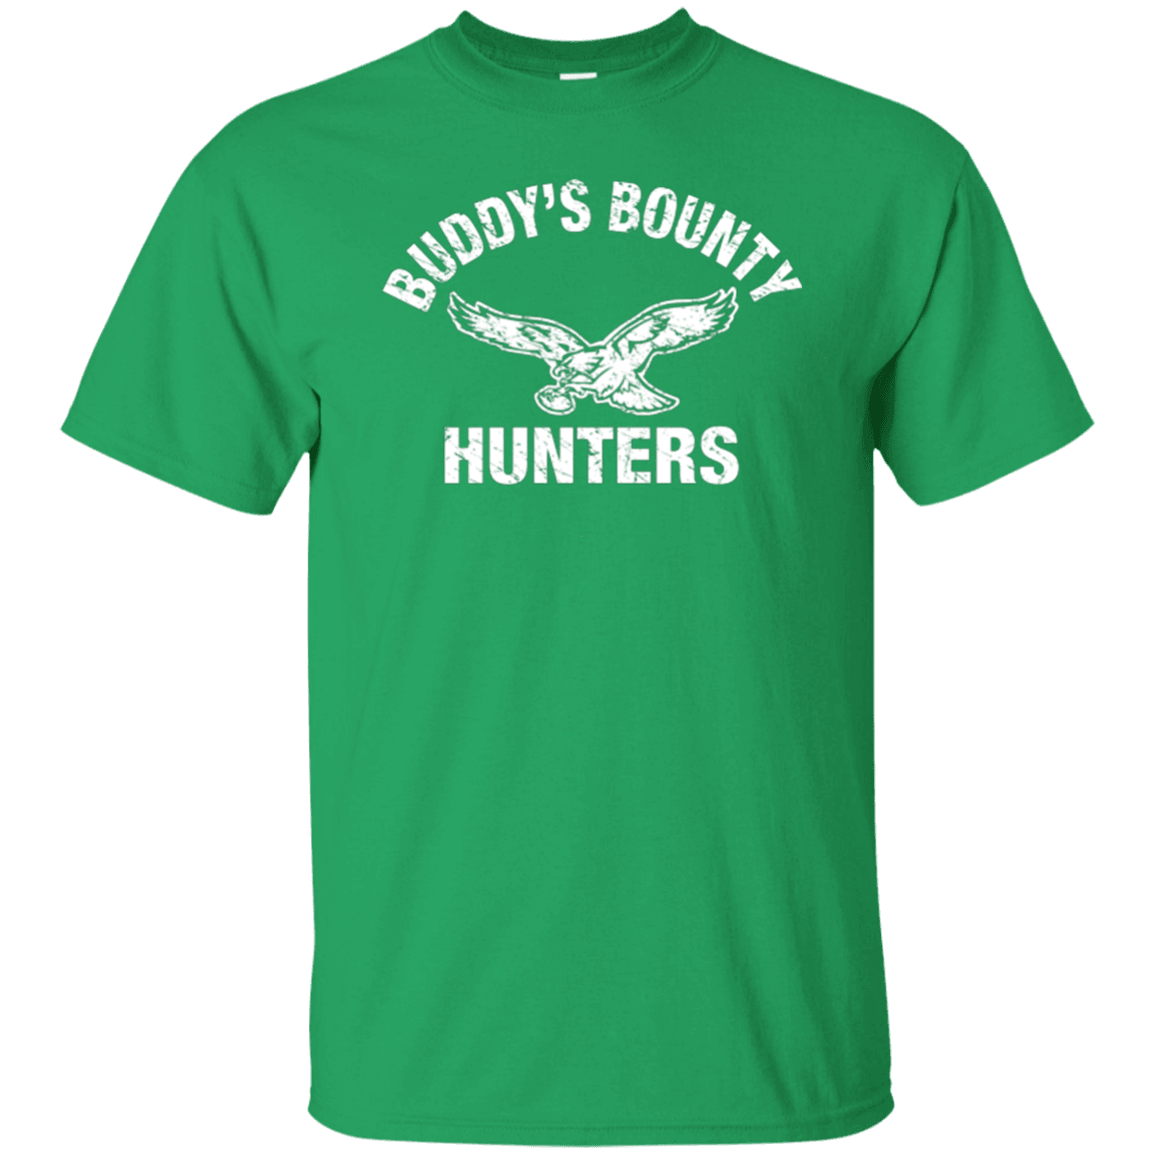 Cyber Special Buddy's Bounty Hunters T-Shirt